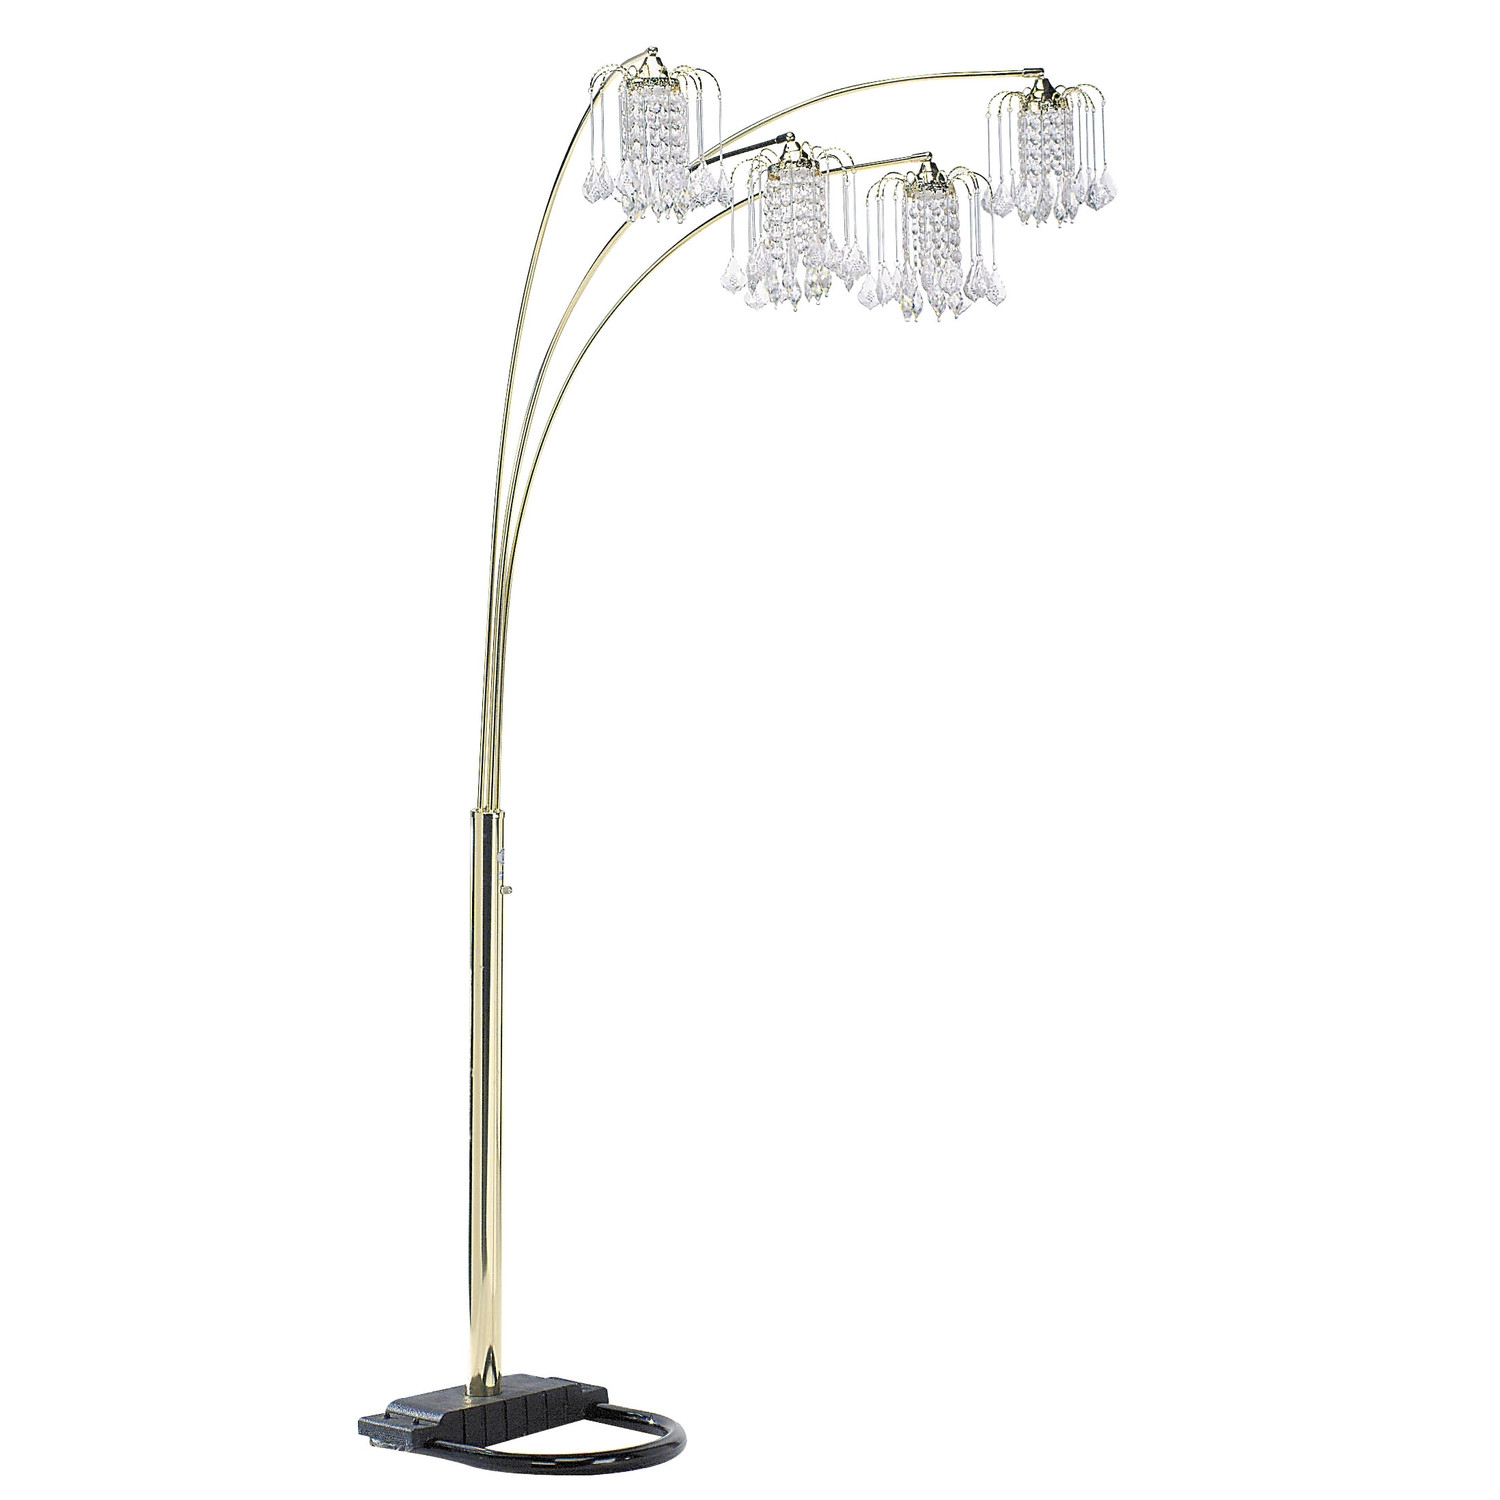 Lights Crystal Floor Lamp Tall Chandelier Lamp Tall Crystal Lamps Inside Standing Chandelier Floor Lamps (Image 18 of 25)